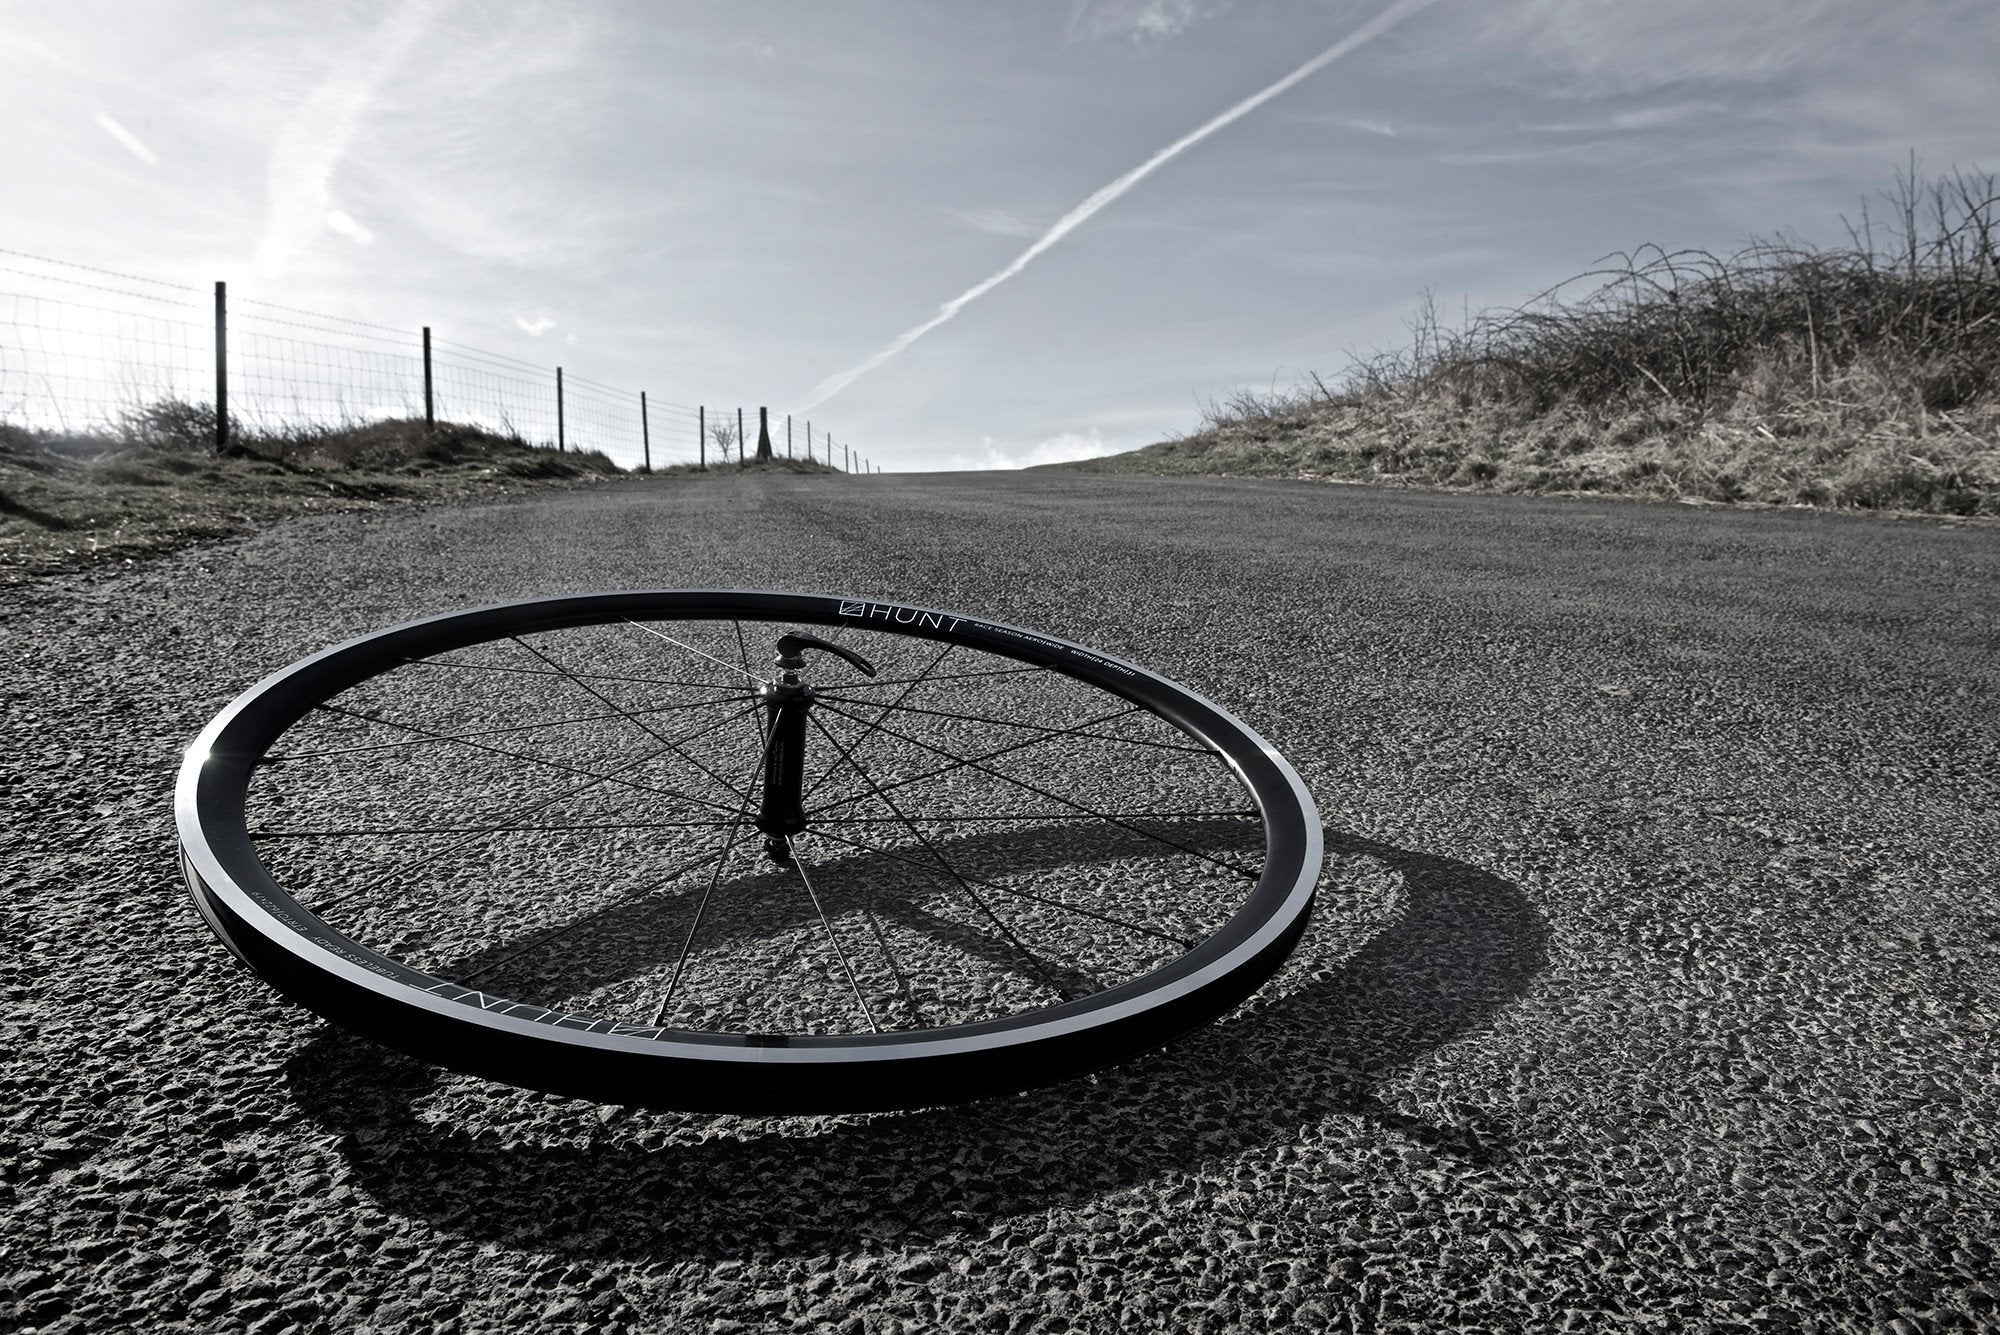 <h1>Weight</h1><i>The consequence of the fanatic attention to detail is a very low 1487 gram wheelset weight especially for this aero depth and width combination. These wheels deliver your potential and then some,. Go on push even harder, they will reward you.</i>